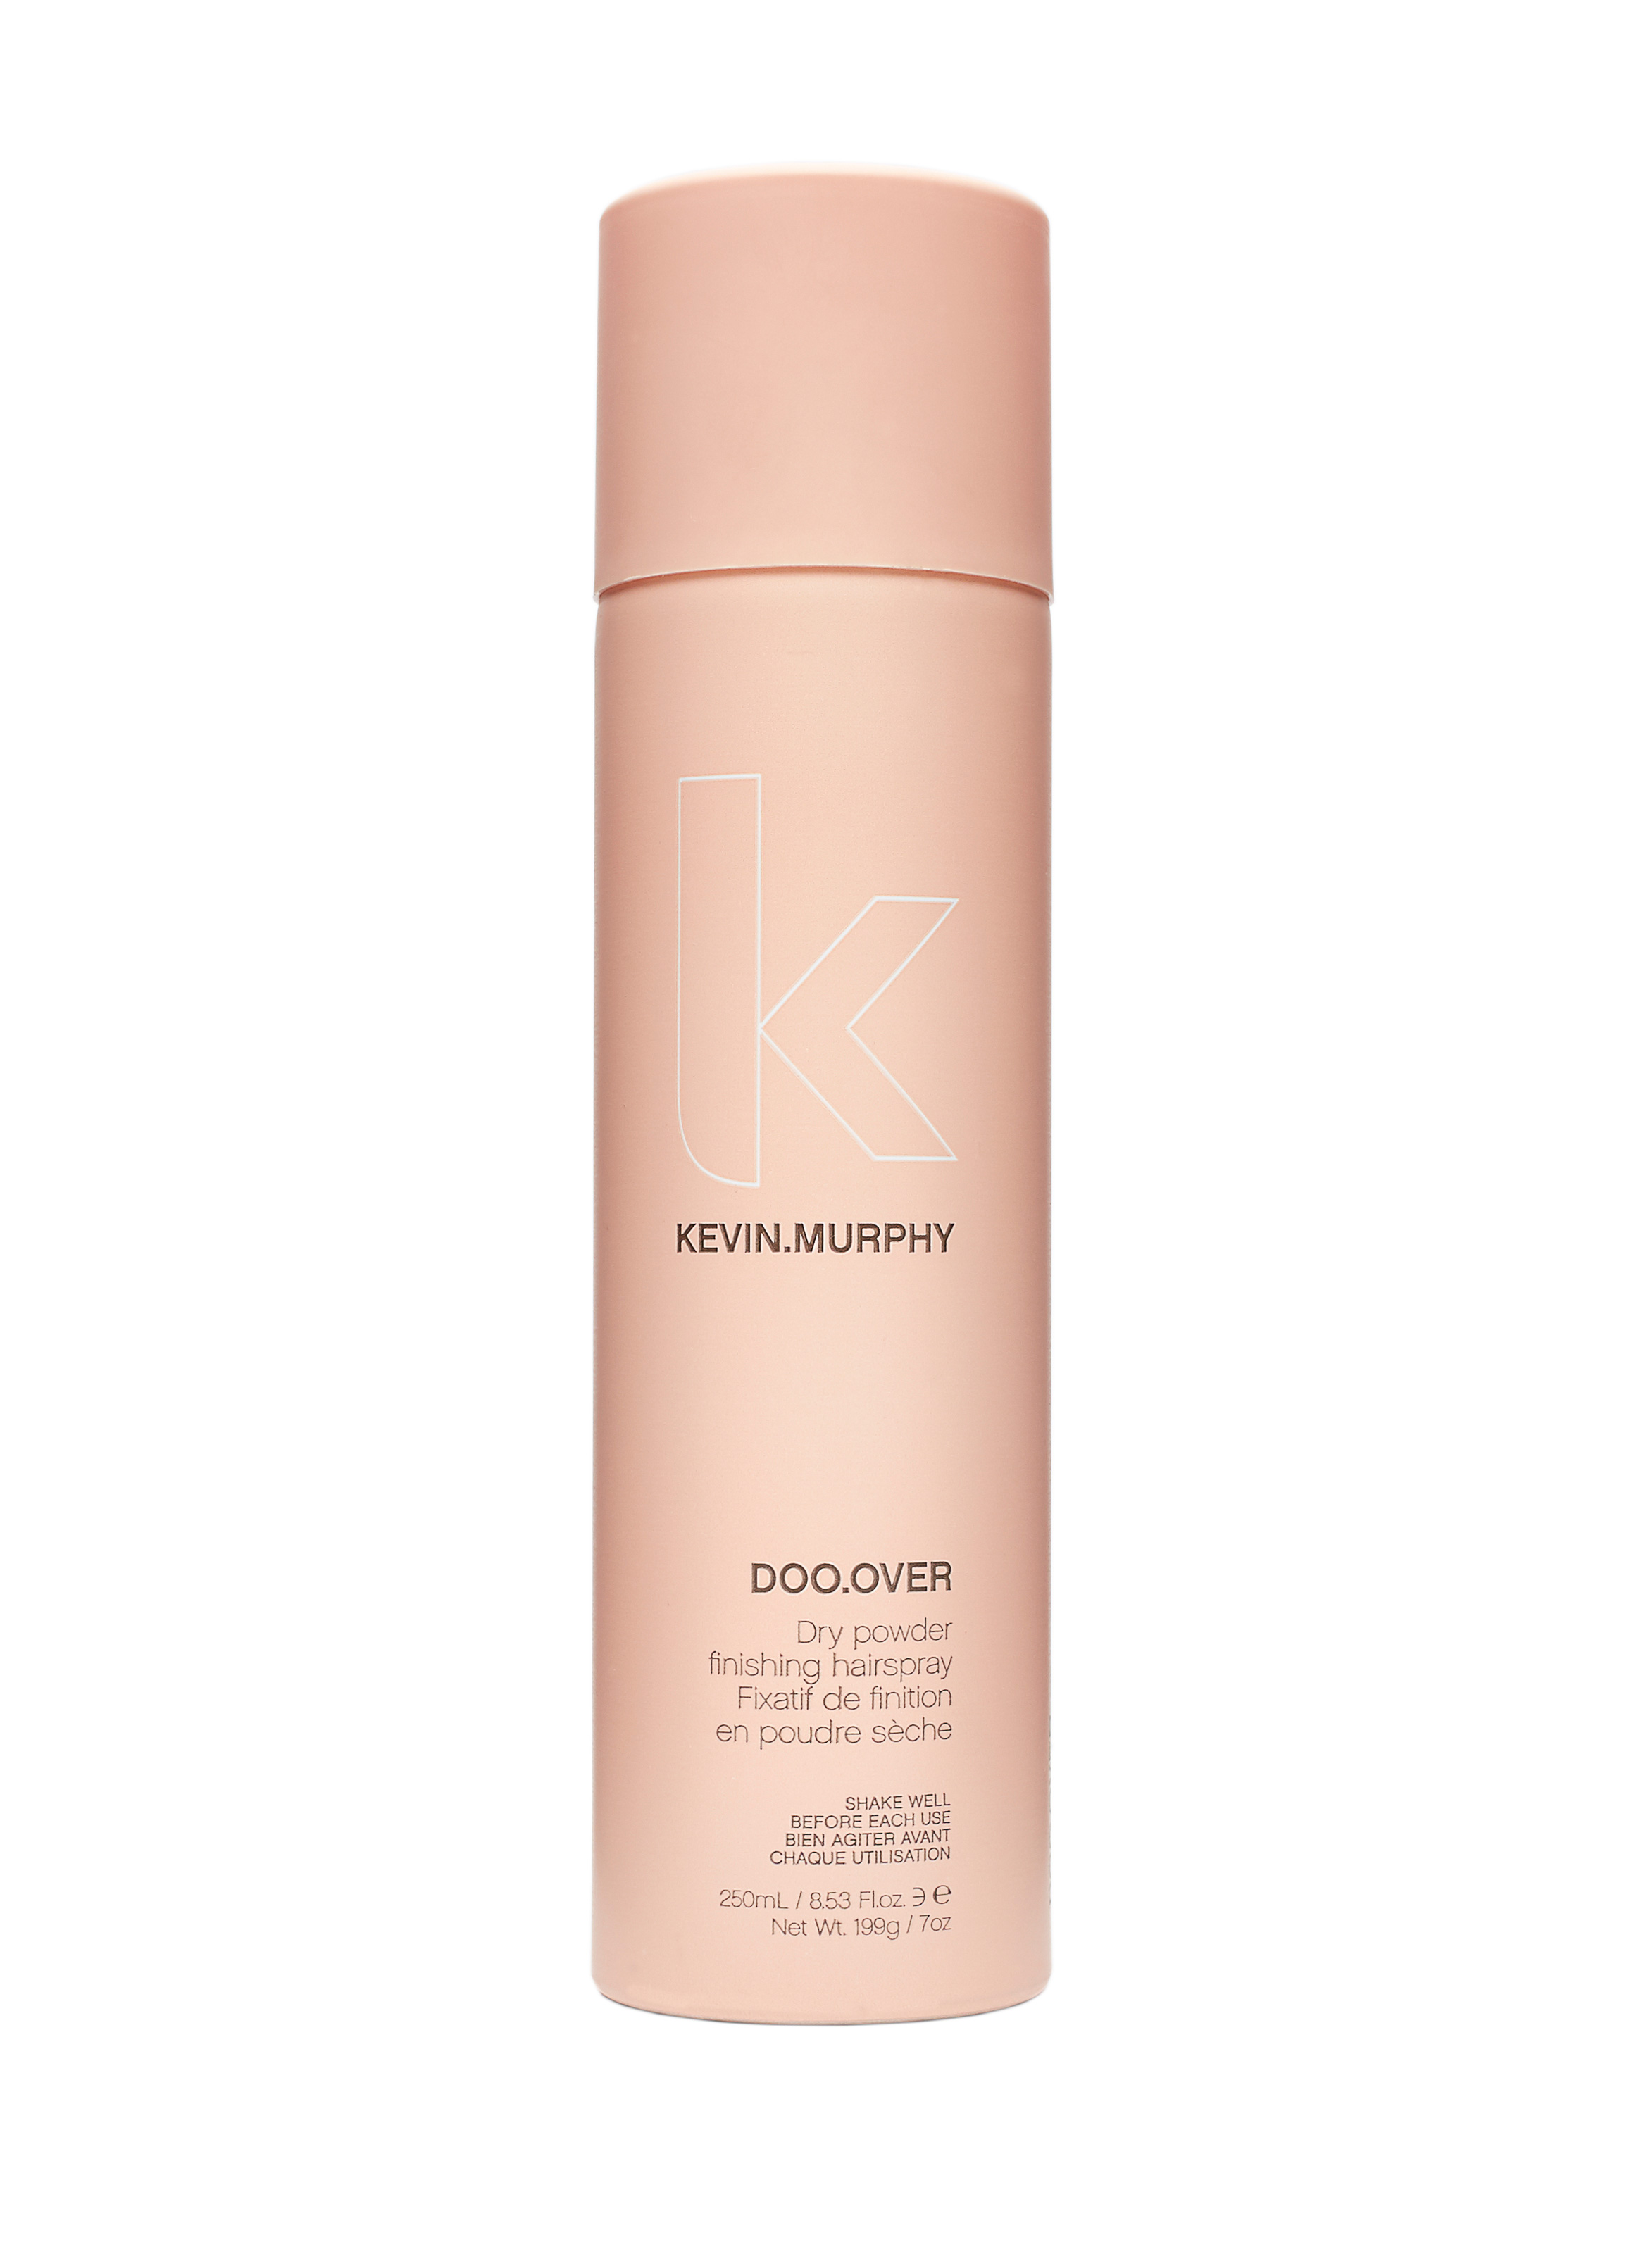 Style Extender: KEVIN.MURPHY Launches DOO.OVER